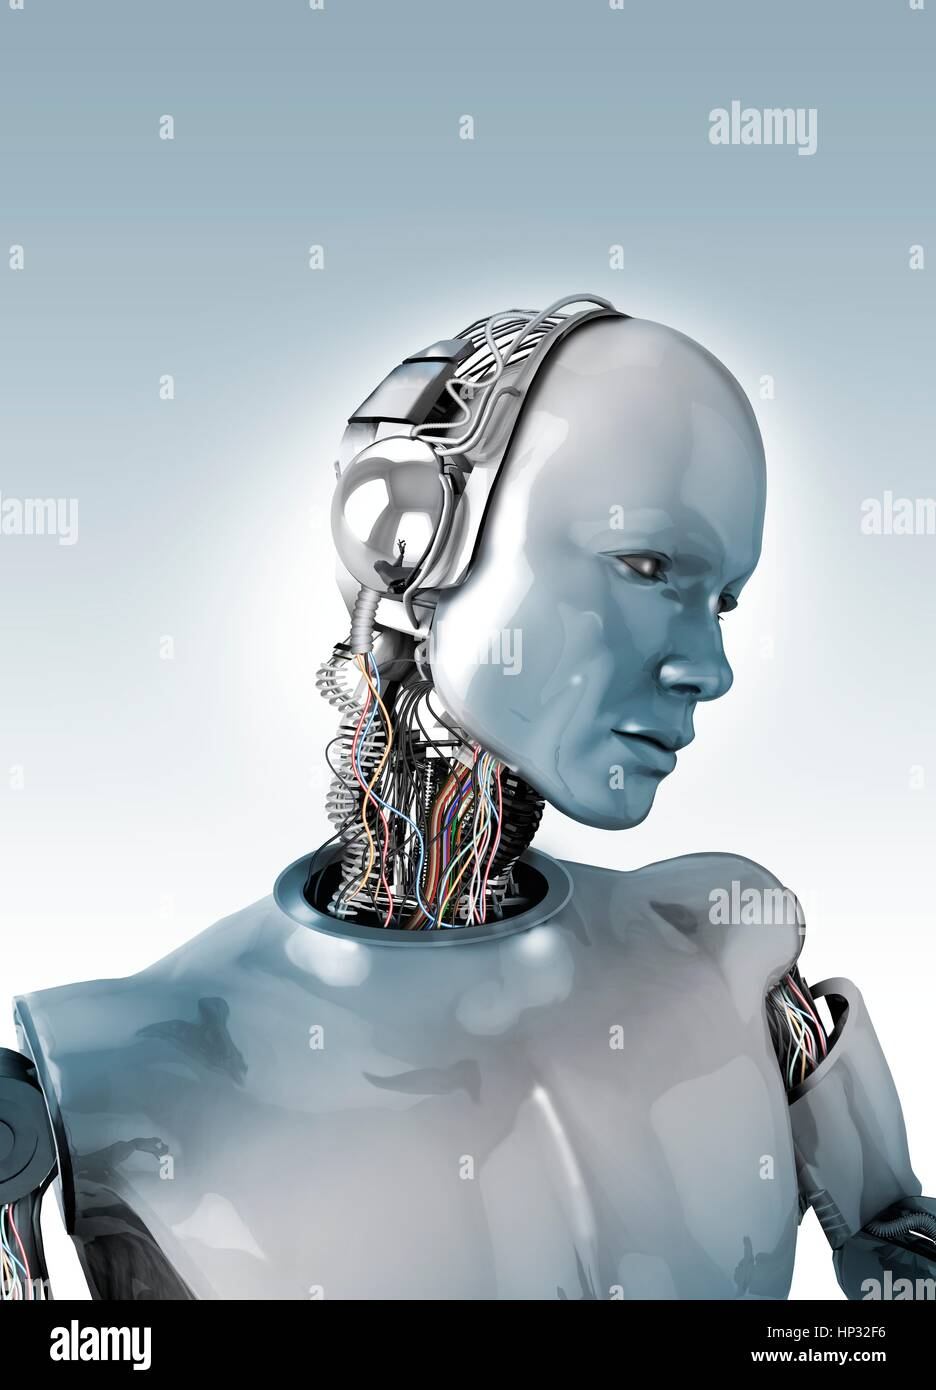 Robot with wires in neck, illustration Stock Photo: 134062858 - Alamy